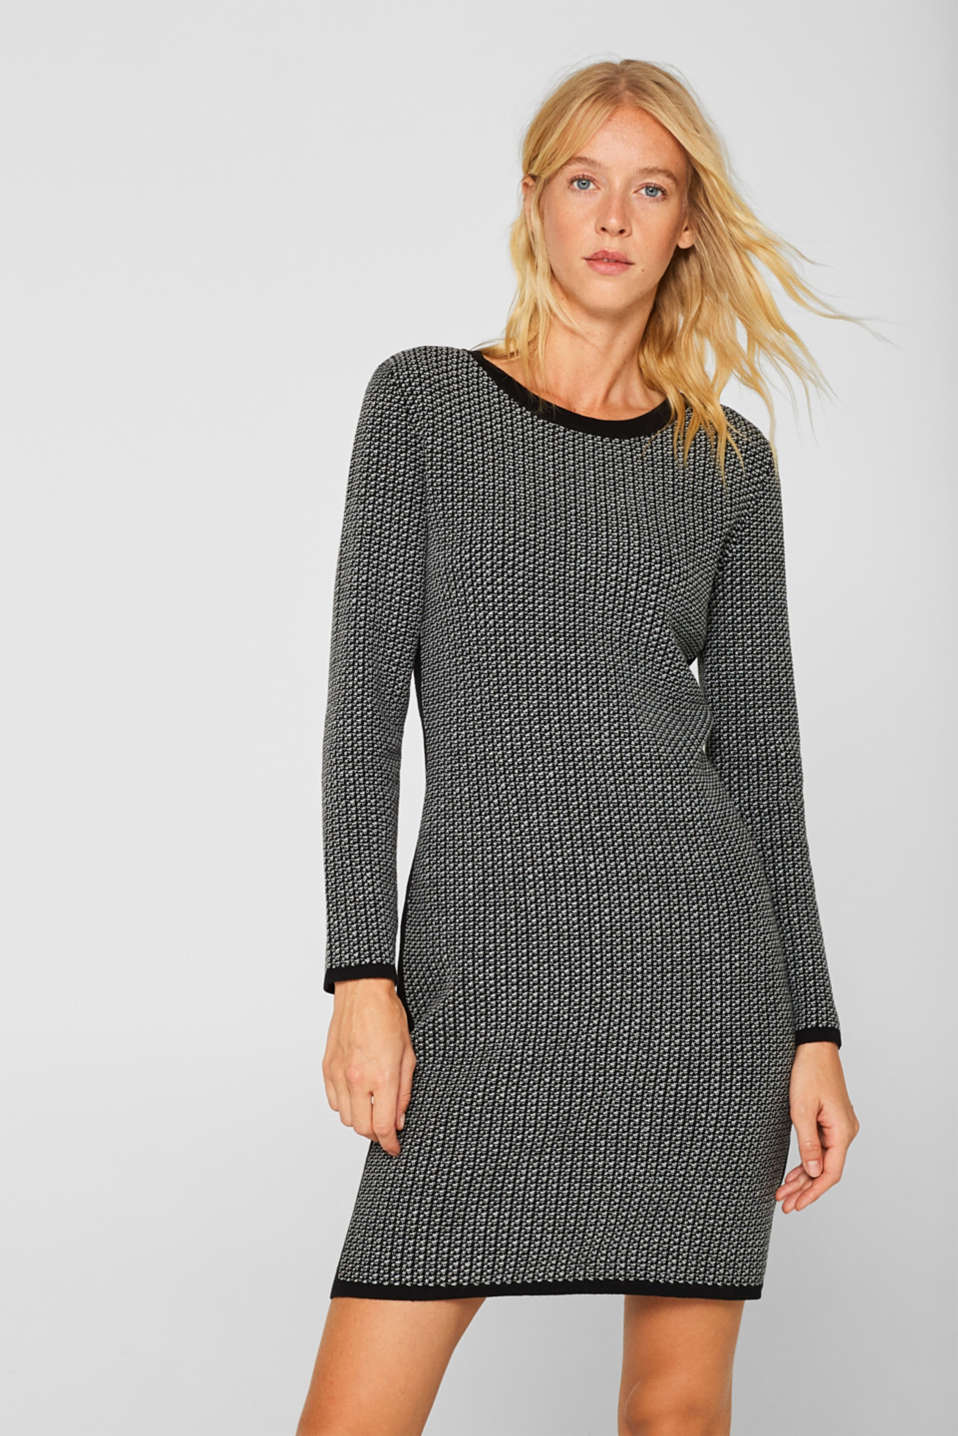 Knit dress with stripes and texture, BLACK 2, detail image number 0